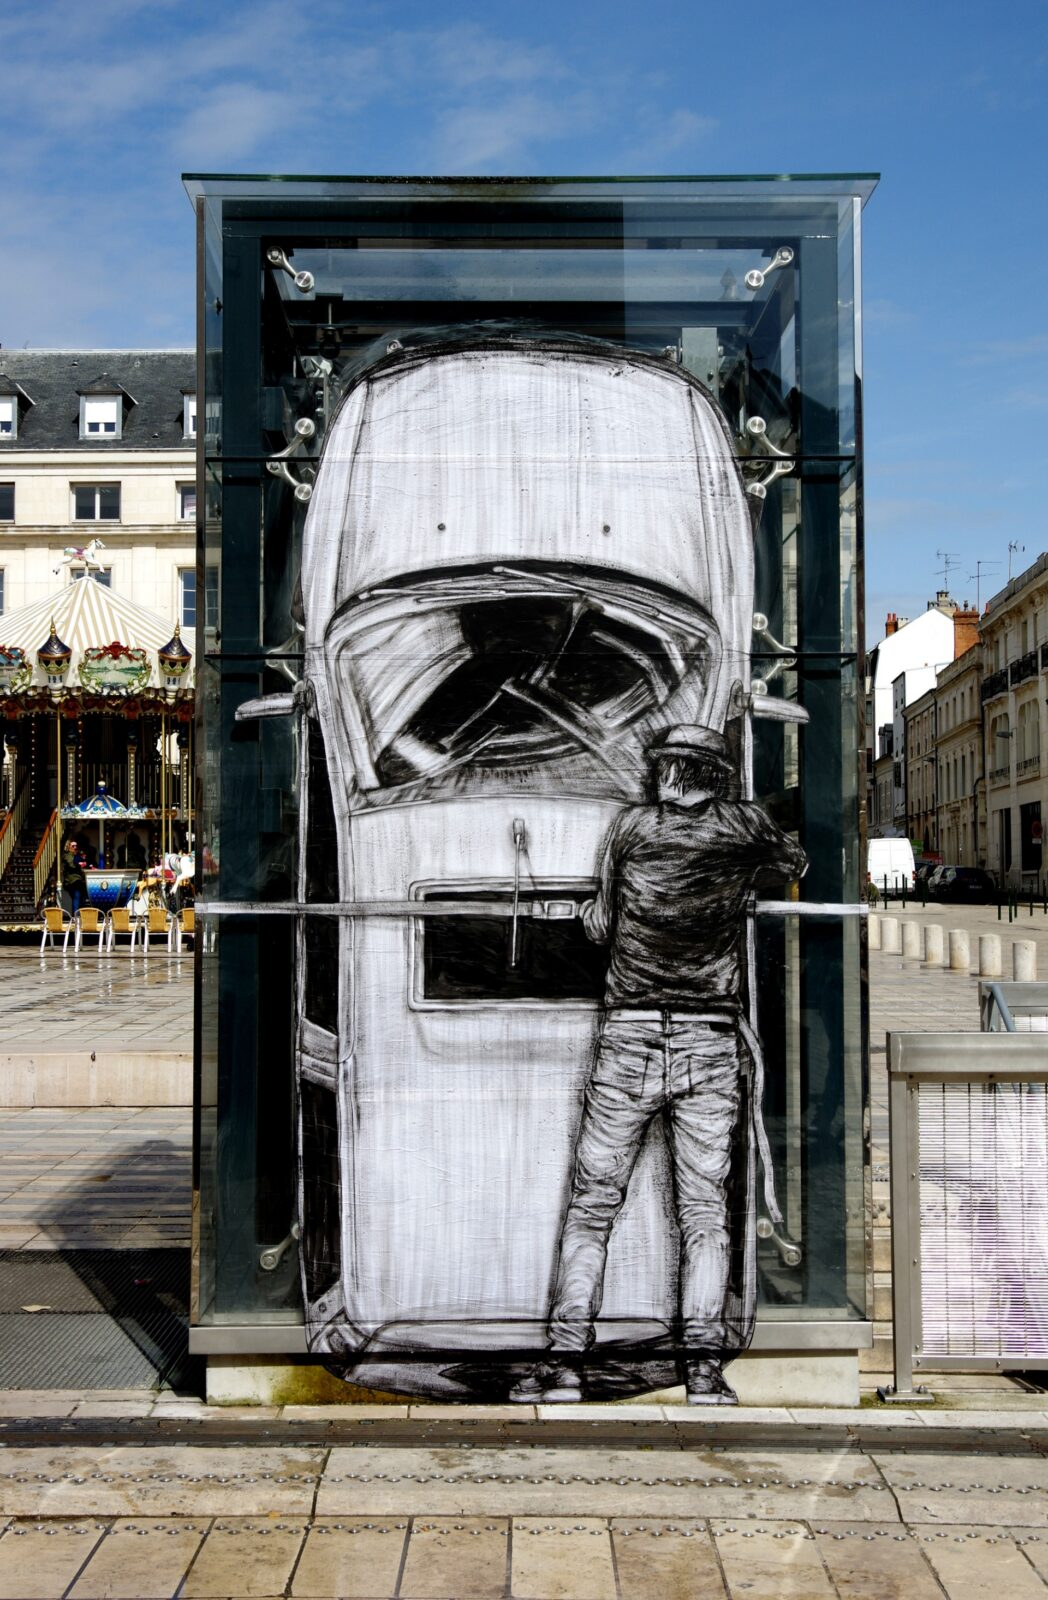 New Humorous Urban Interventions by Levalet Combine Wheatpaste Artworks with Public Architecture